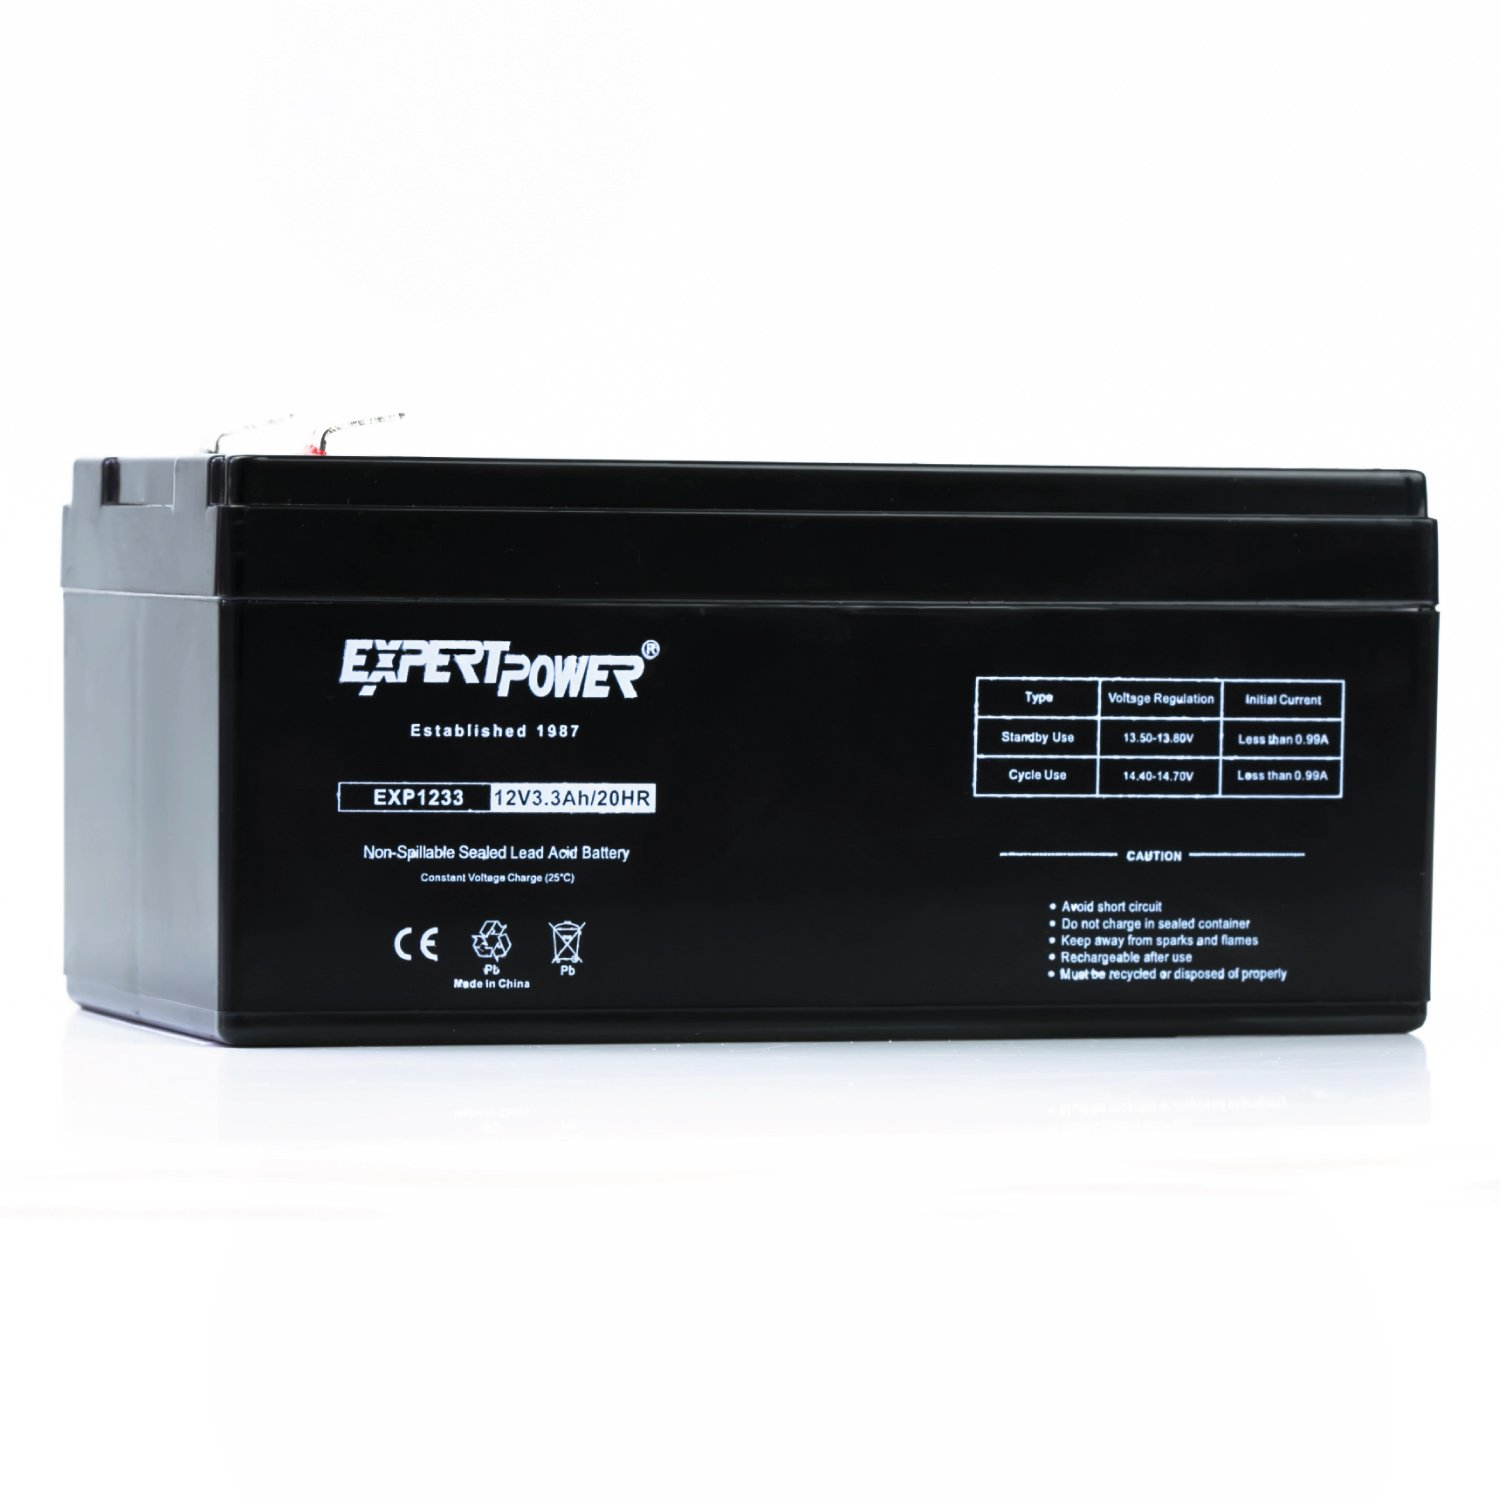 apc ups battery replacement smart ups 1500 rbc7 youtube UPS Battery Diagram  UPS Battery Diagram